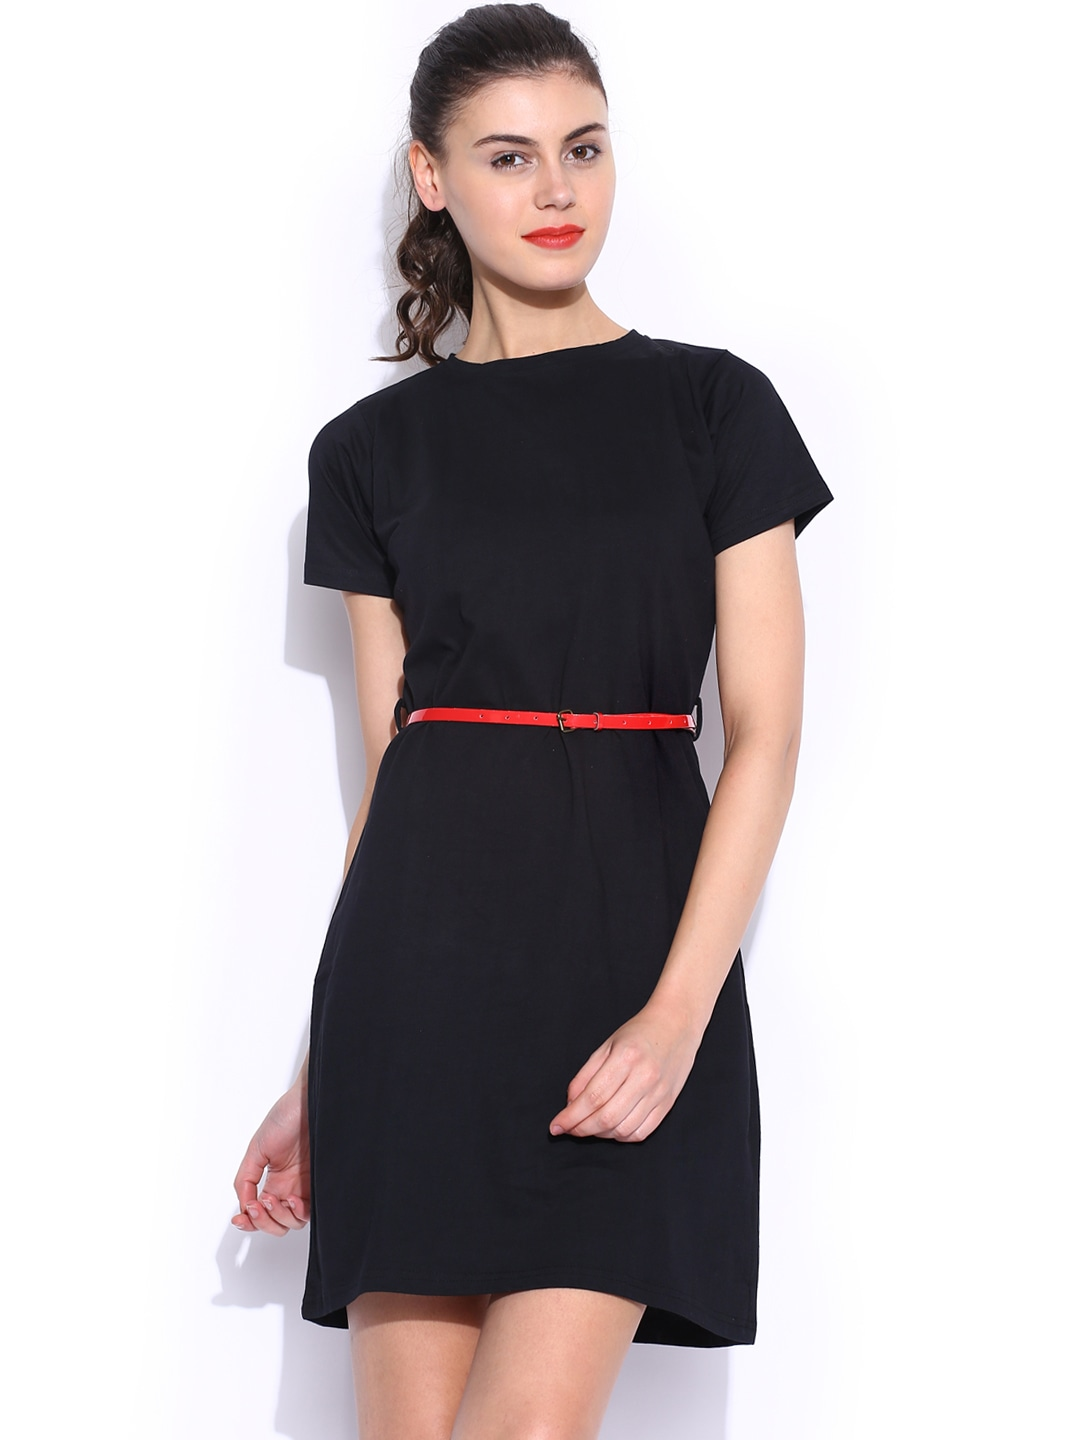 Formal Dresses - Formal Dresses for Women Online | Myntra